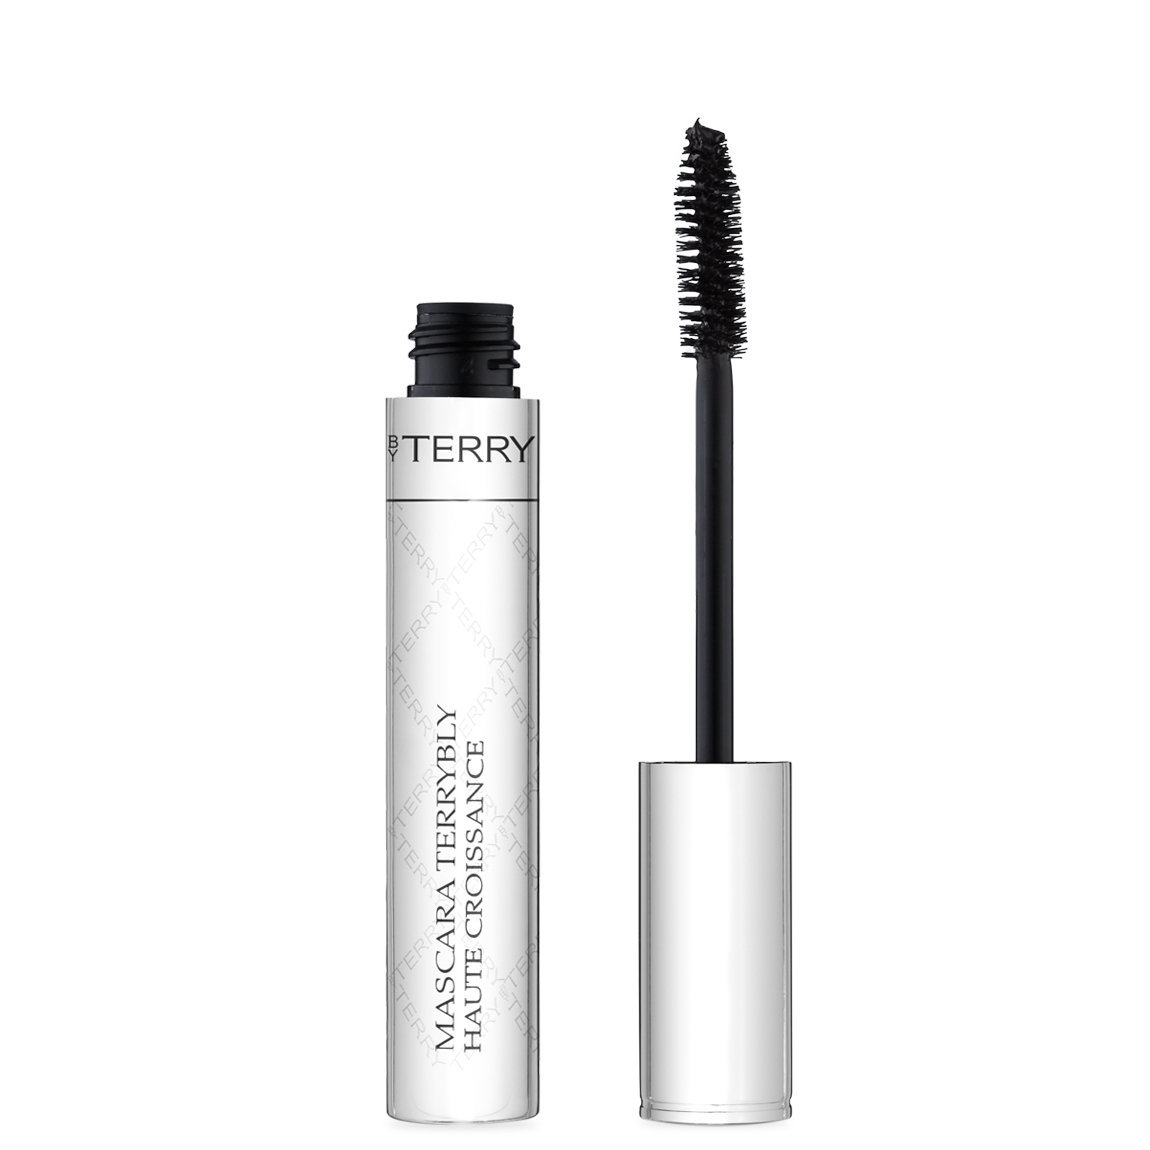 BY TERRY Mascara Terrybly Growth Booster Mascara 1 Black Parti-Pris alternative view 1.